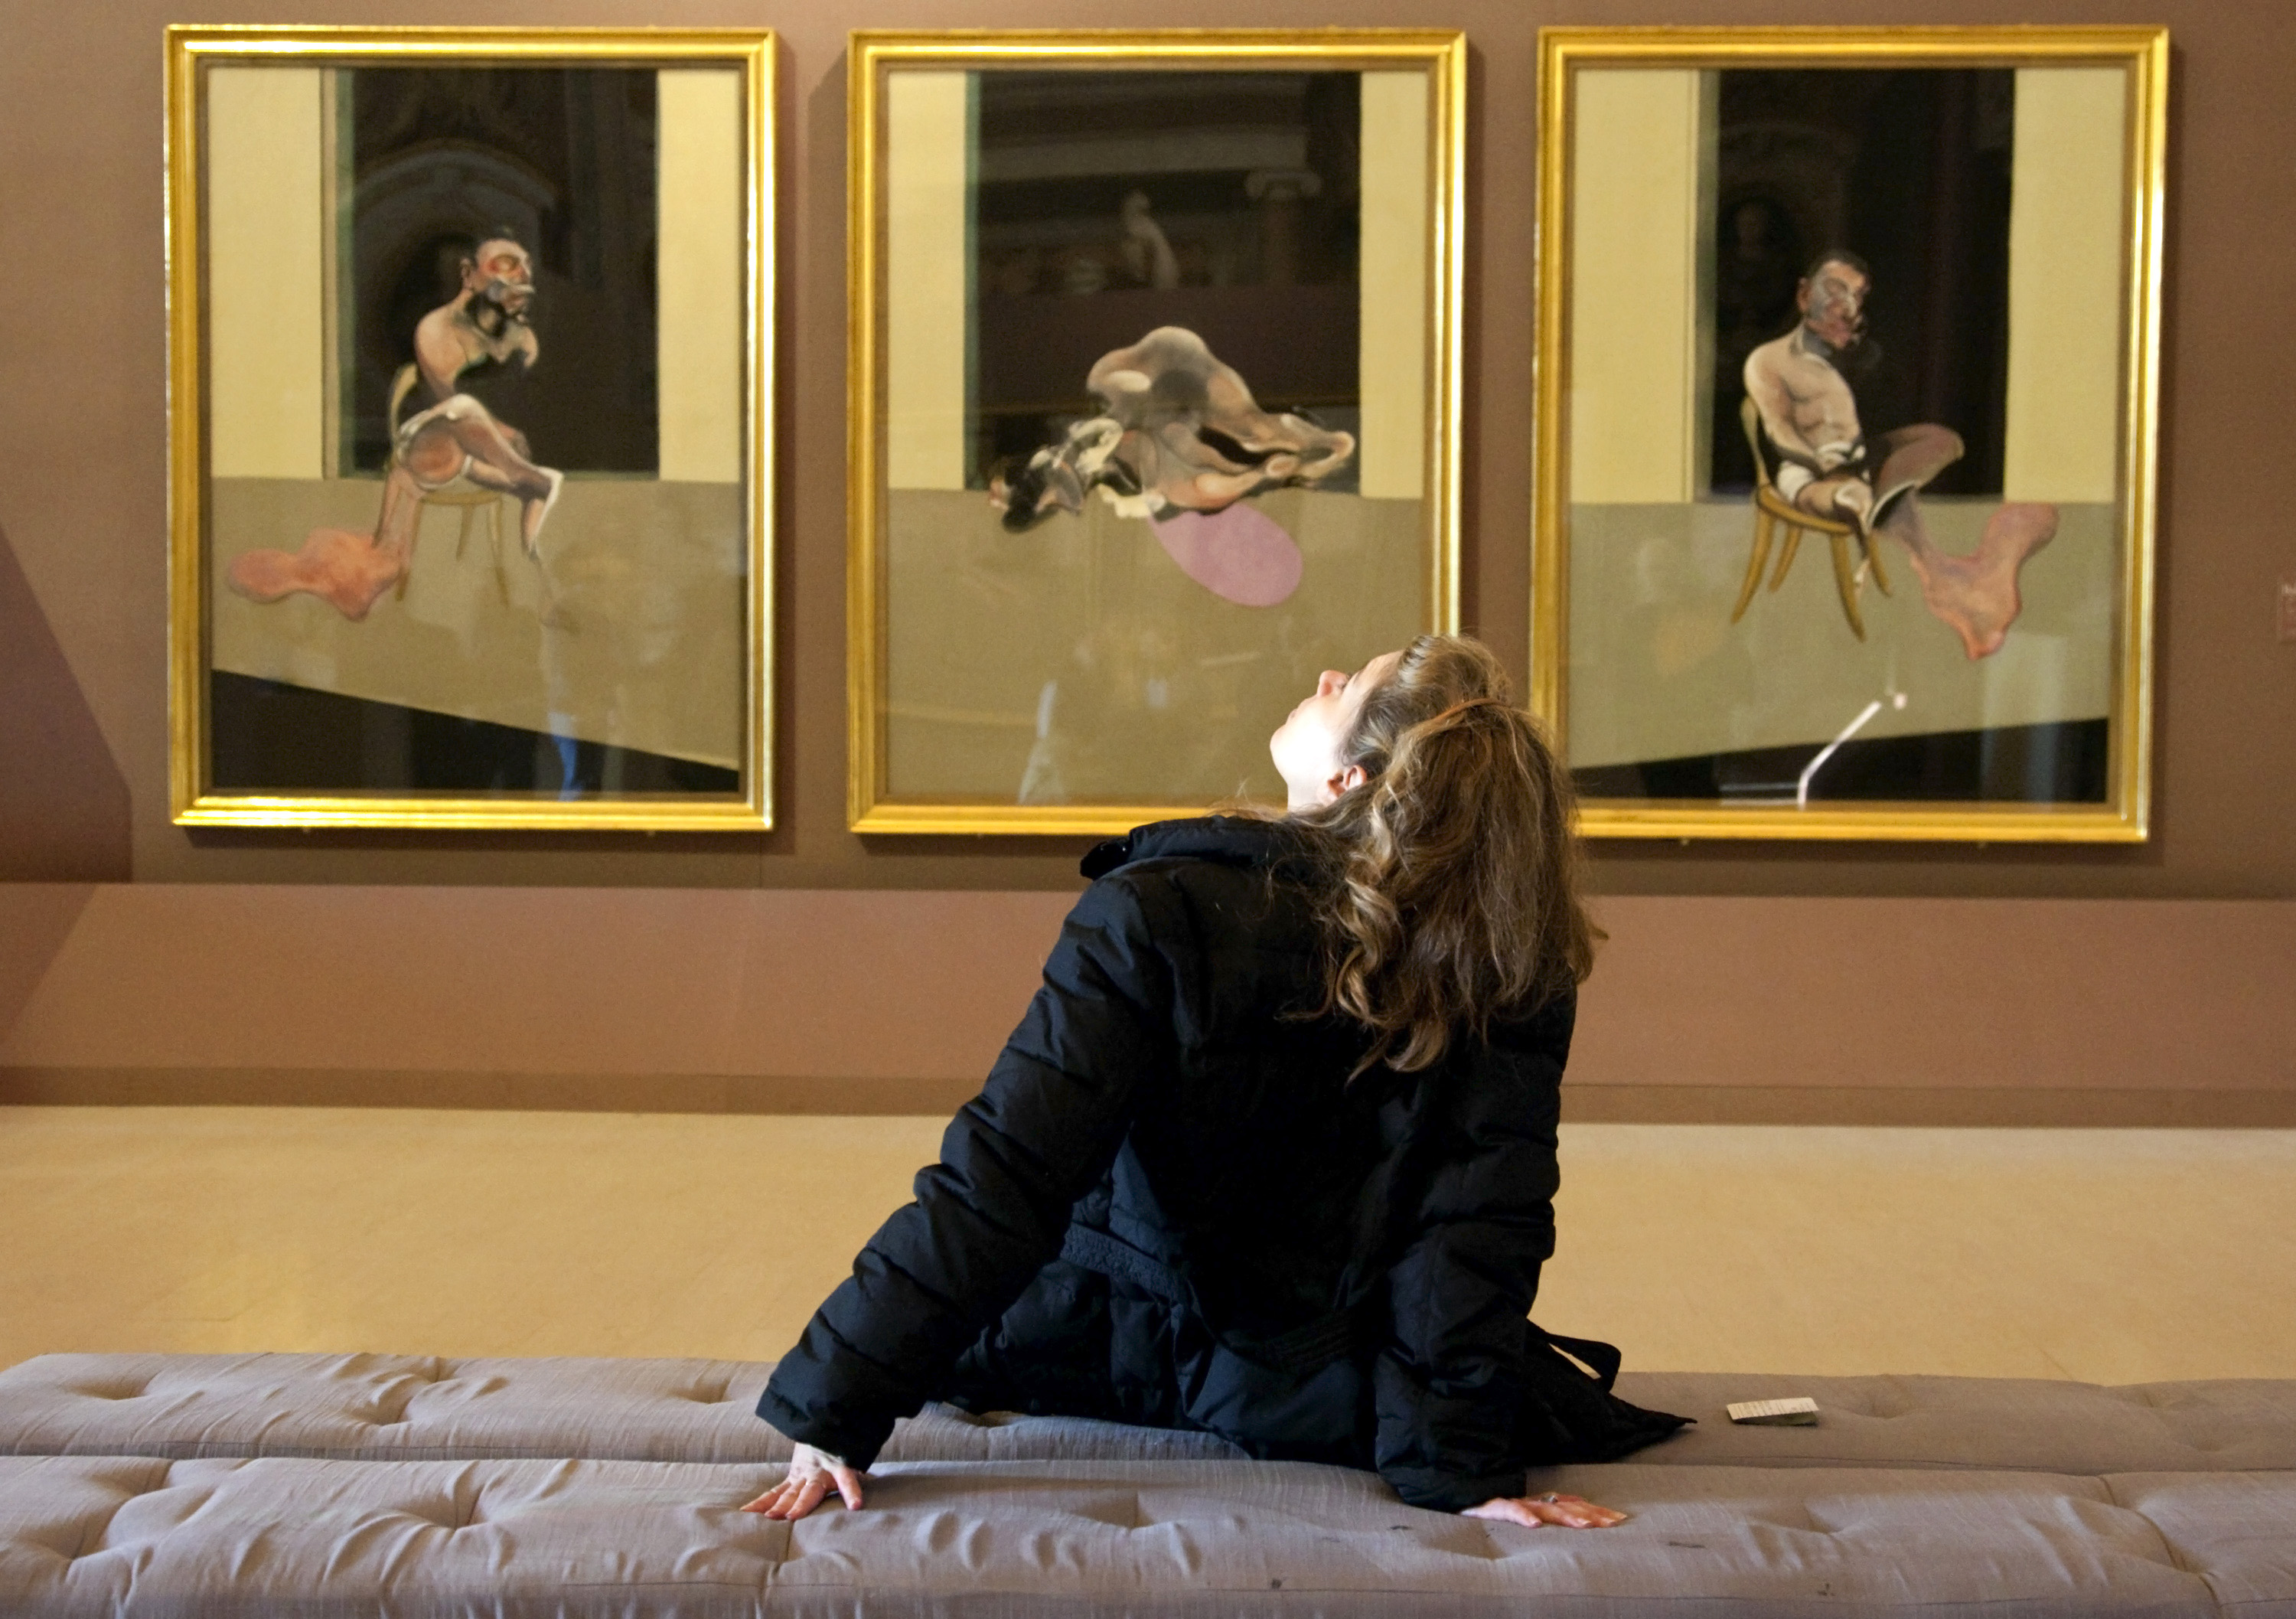 A woman looks at a Francis Bacon painting during an exhibition at the Galleria Borghese in Rome November 11, 2009. Portraits by Italian master Caravaggio and Irish-born 20th-century painter Francis Bacon stand side-by-side in new exhibition connecting their tormented views of humanity despite contrasting approaches to realism. The show at Rome's Galleria Borghese marks 400 years since Caravaggio's death and 100 years since Bacon's birth and at its heart lies their shared fascination with the human form and their predilection for the expressive portrait. Picture taken November 11, 2009. To match Reuters Life! ITALY-CARAVAGGIO/BACON            REUTERS/Max Rossi   (ITALY SOCIETY) - RTXQMYI